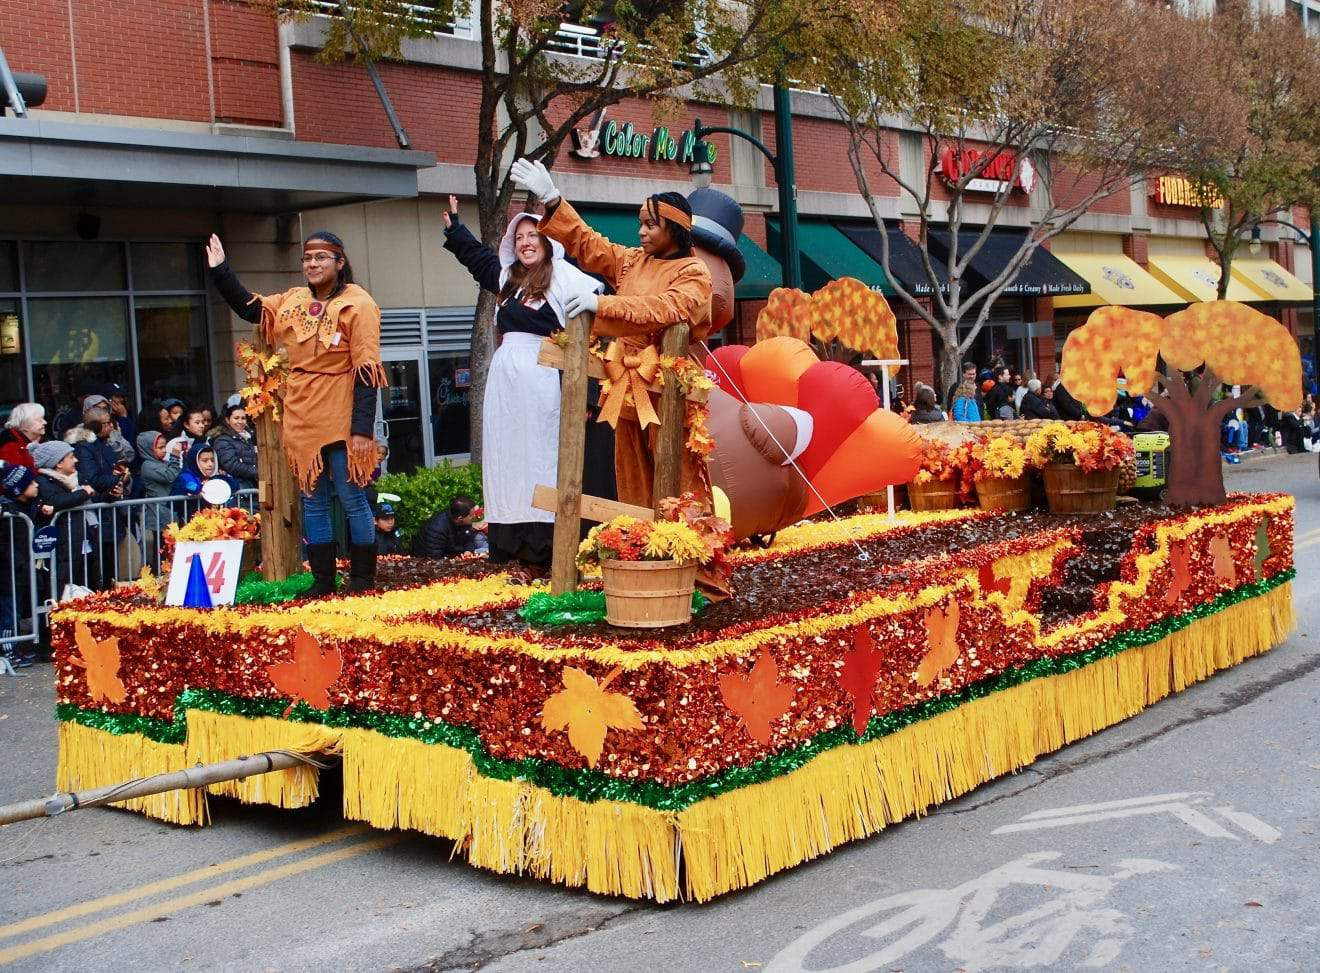 Thanksgiving Parade in Photos - If you missed the county's annual Thanksgiving parade on Saturday, please enjoy some photos from the day.